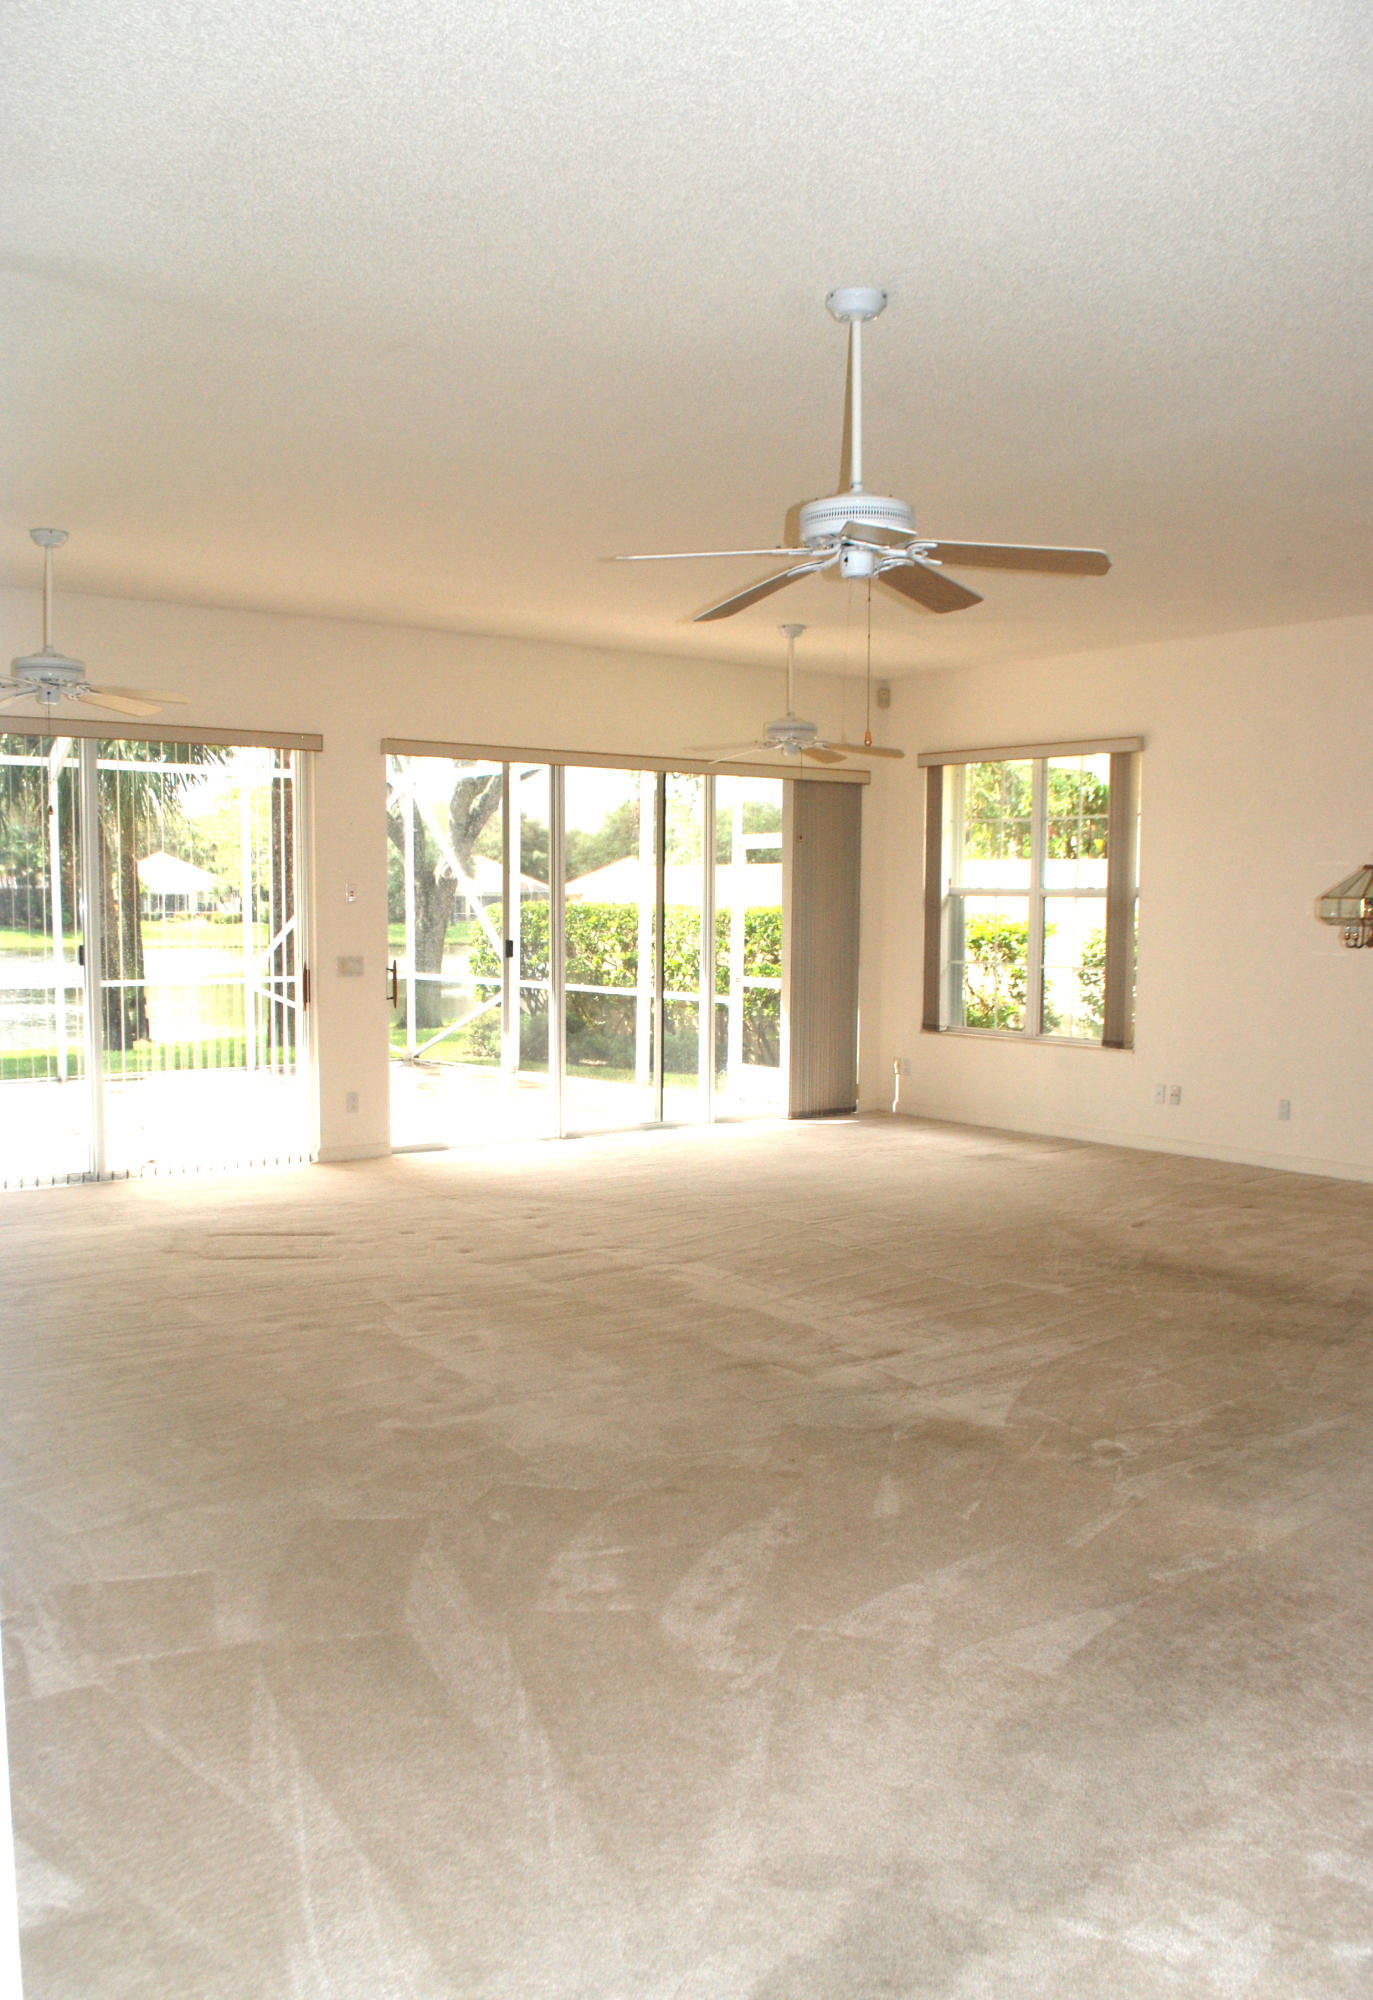 174 Tall Oaks Circle, Palm Beach Gardens, Florida 33410, 3 Bedrooms Bedrooms, ,2 BathroomsBathrooms,Single Family,For Sale,Tall Oaks,RX-10374057